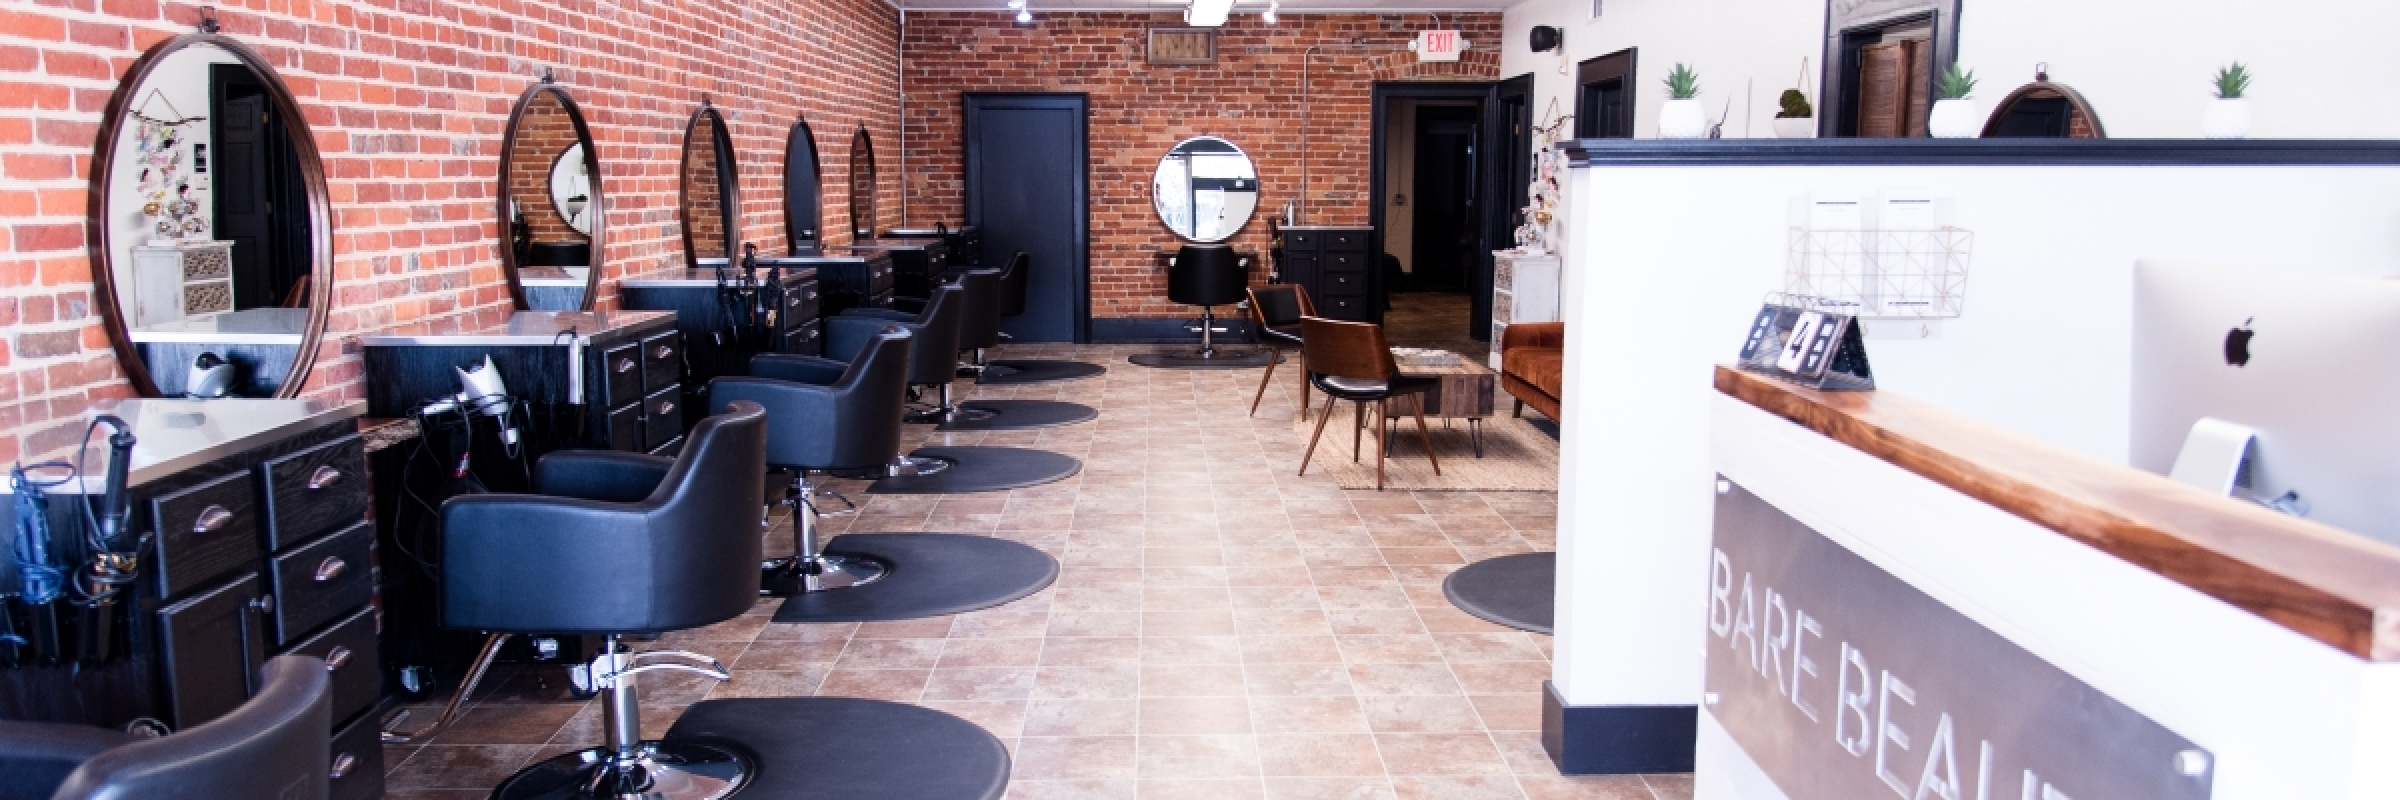 compressed salon front